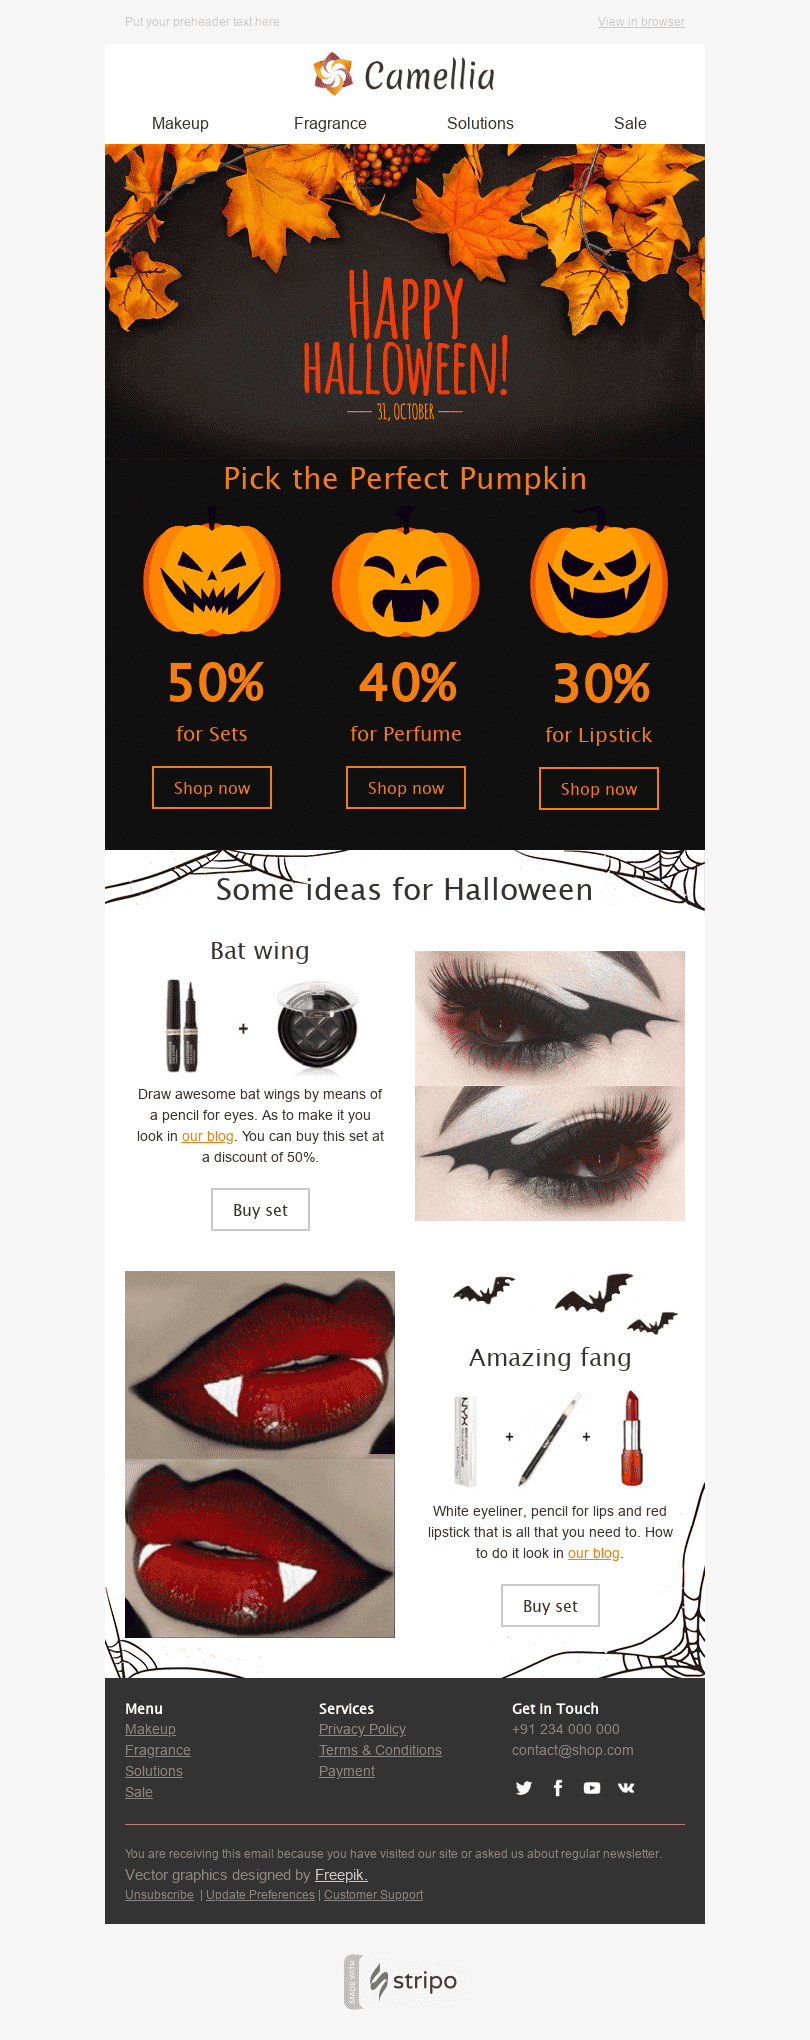 Stripo Cosmetics Holiday newsletter Halloween Awful Pretty Make up email web